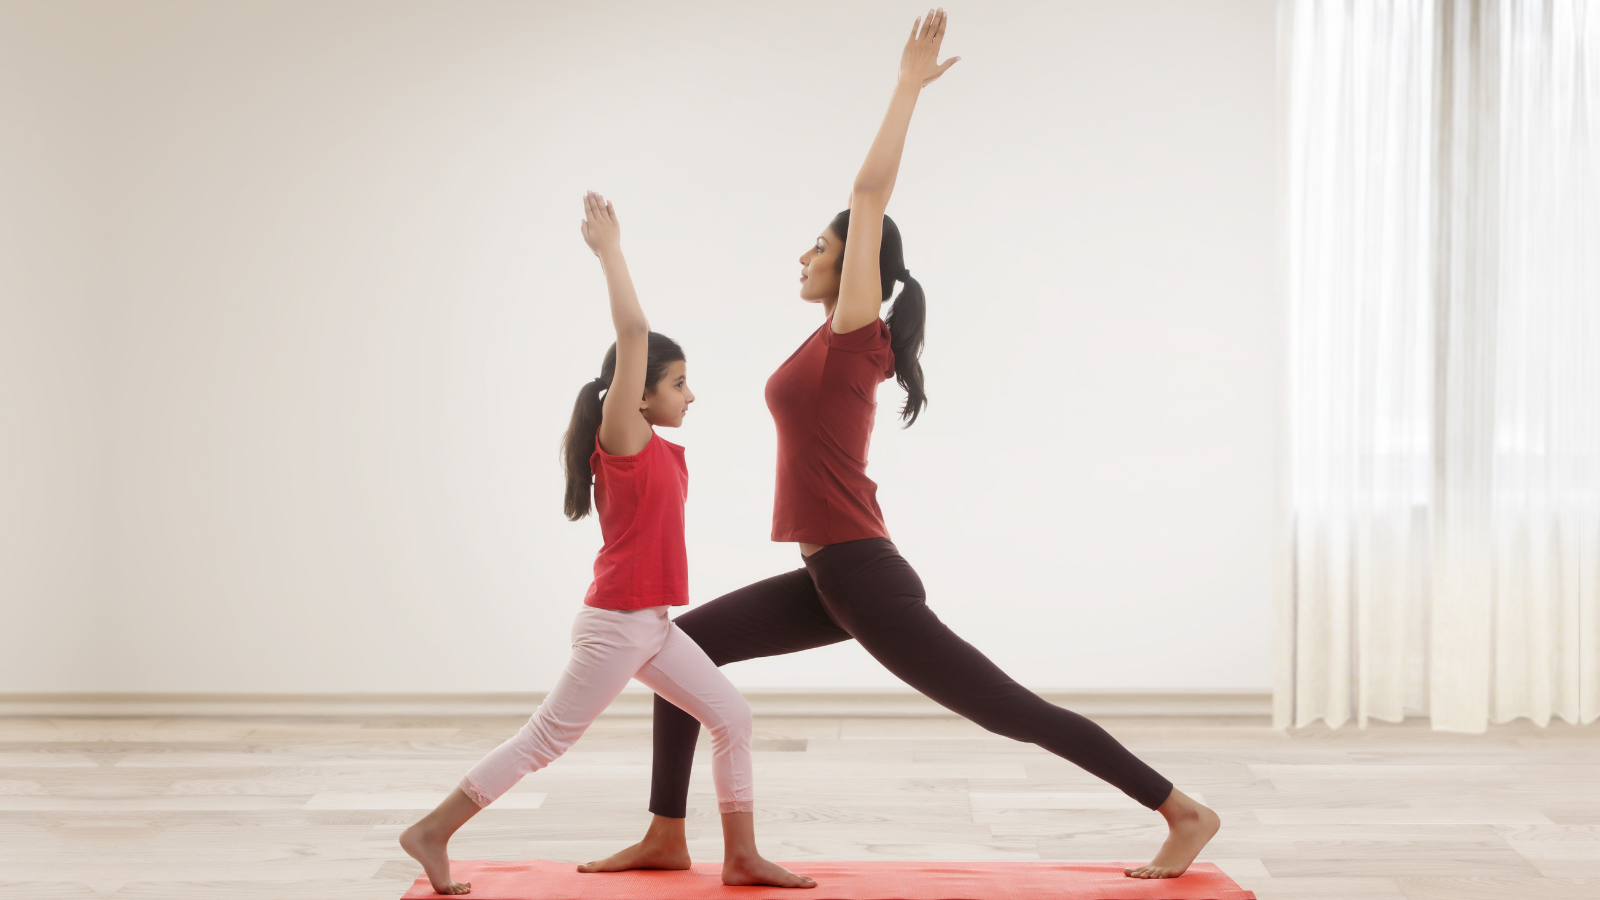 mother and daughter enjoying the benefits of yoga and exercise